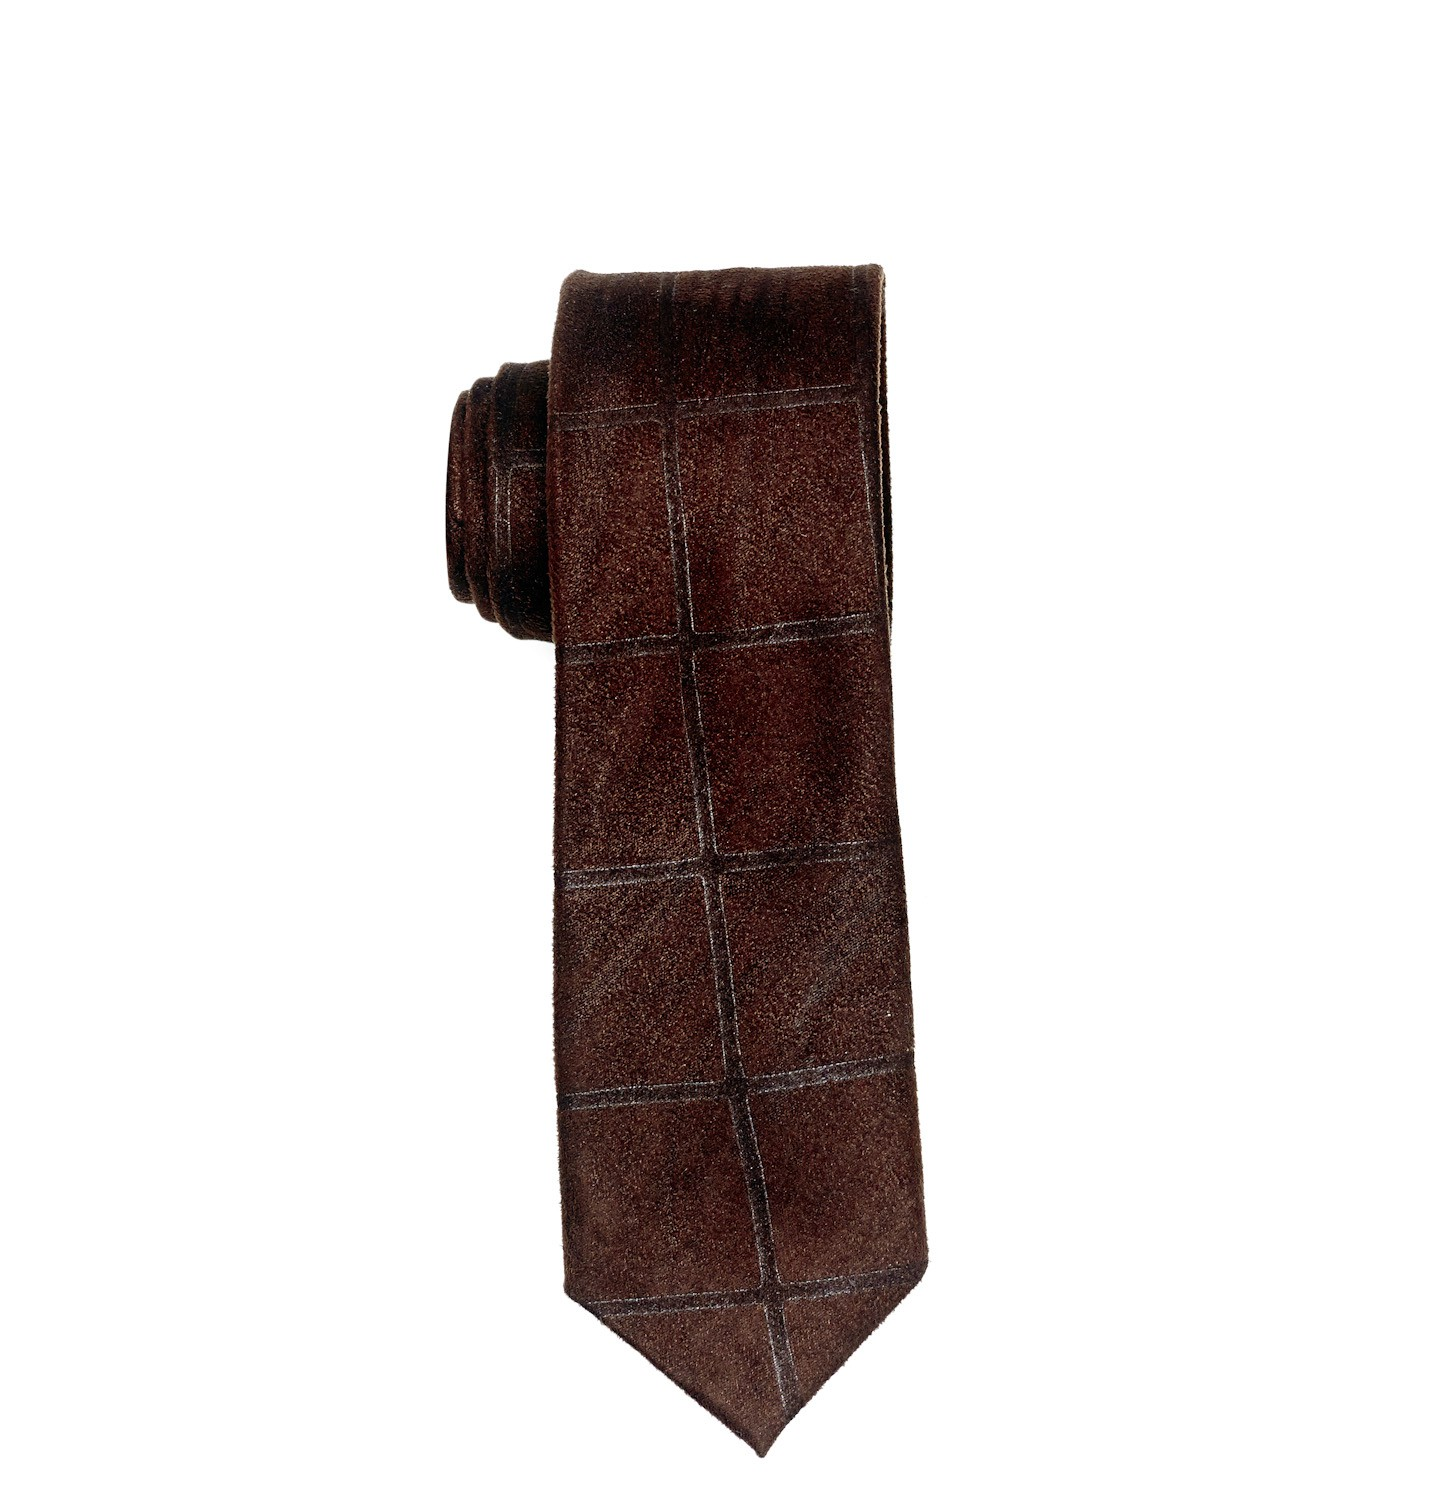 Diamond Dark Brown Suede Necktie by The Tie Hub